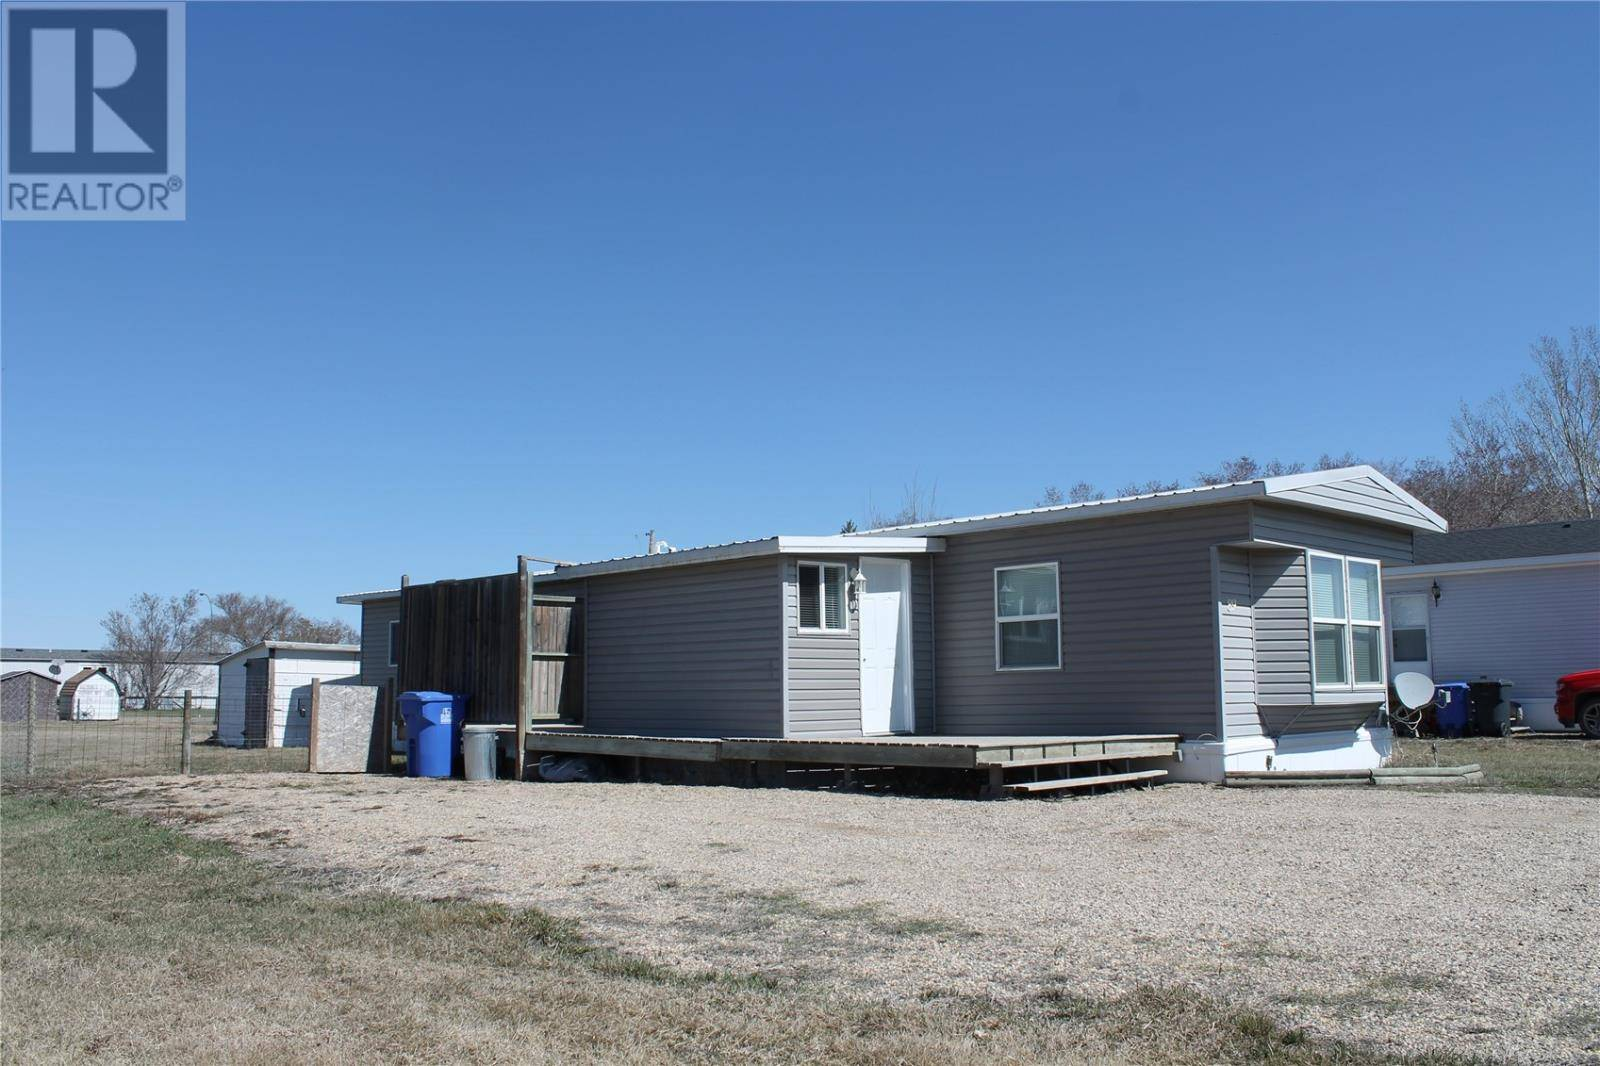 Home for sale at 89 Prairie Ave Arcola Saskatchewan - MLS: SK763094